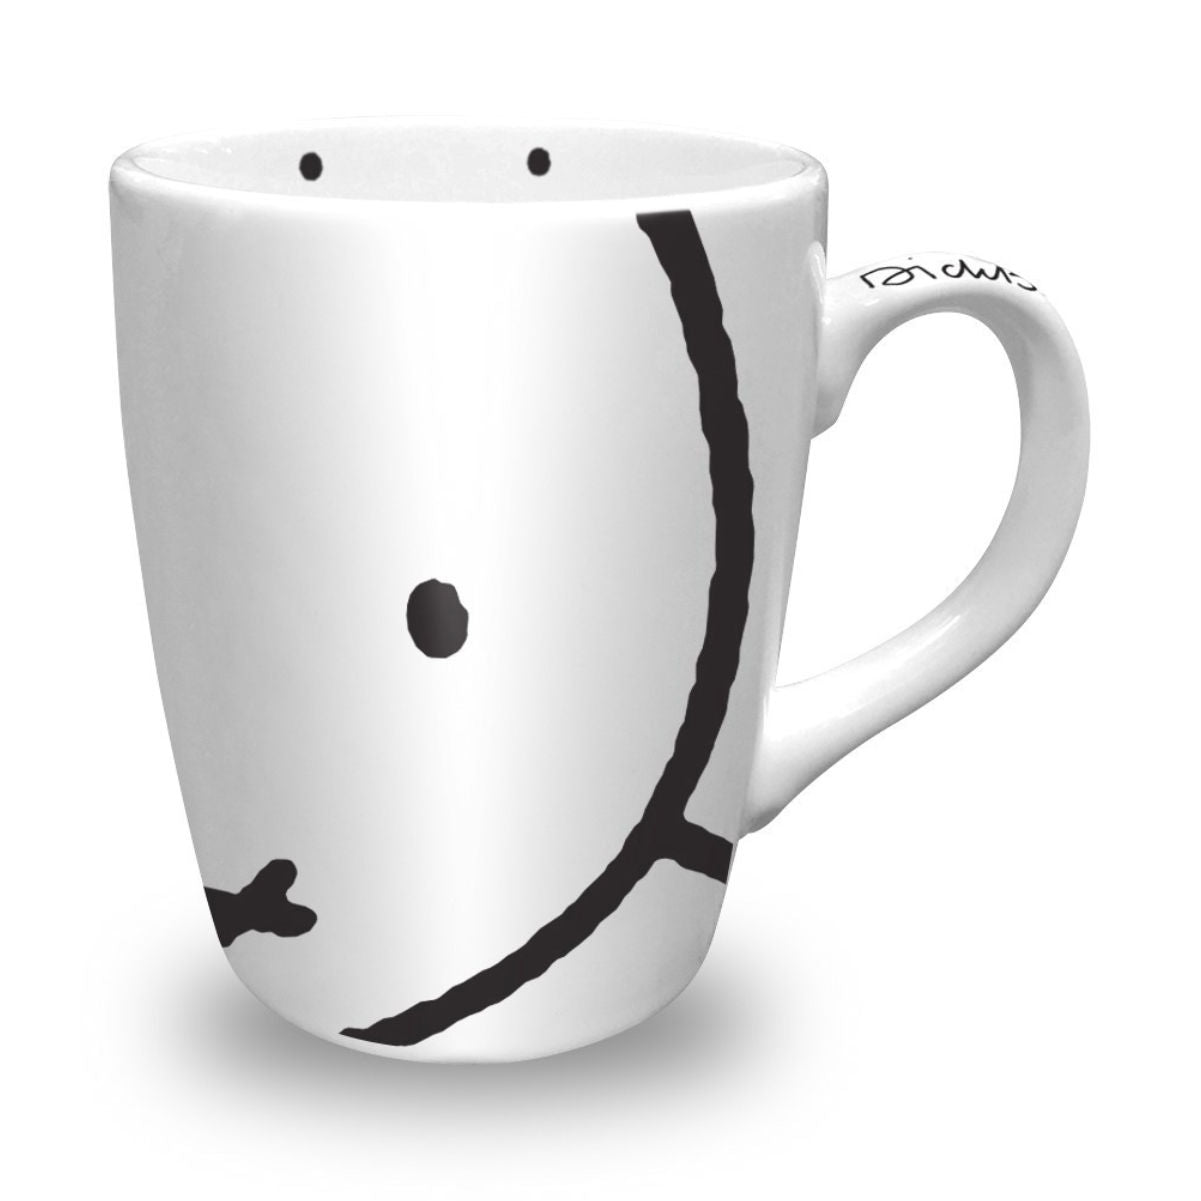 Miffy face mug, white